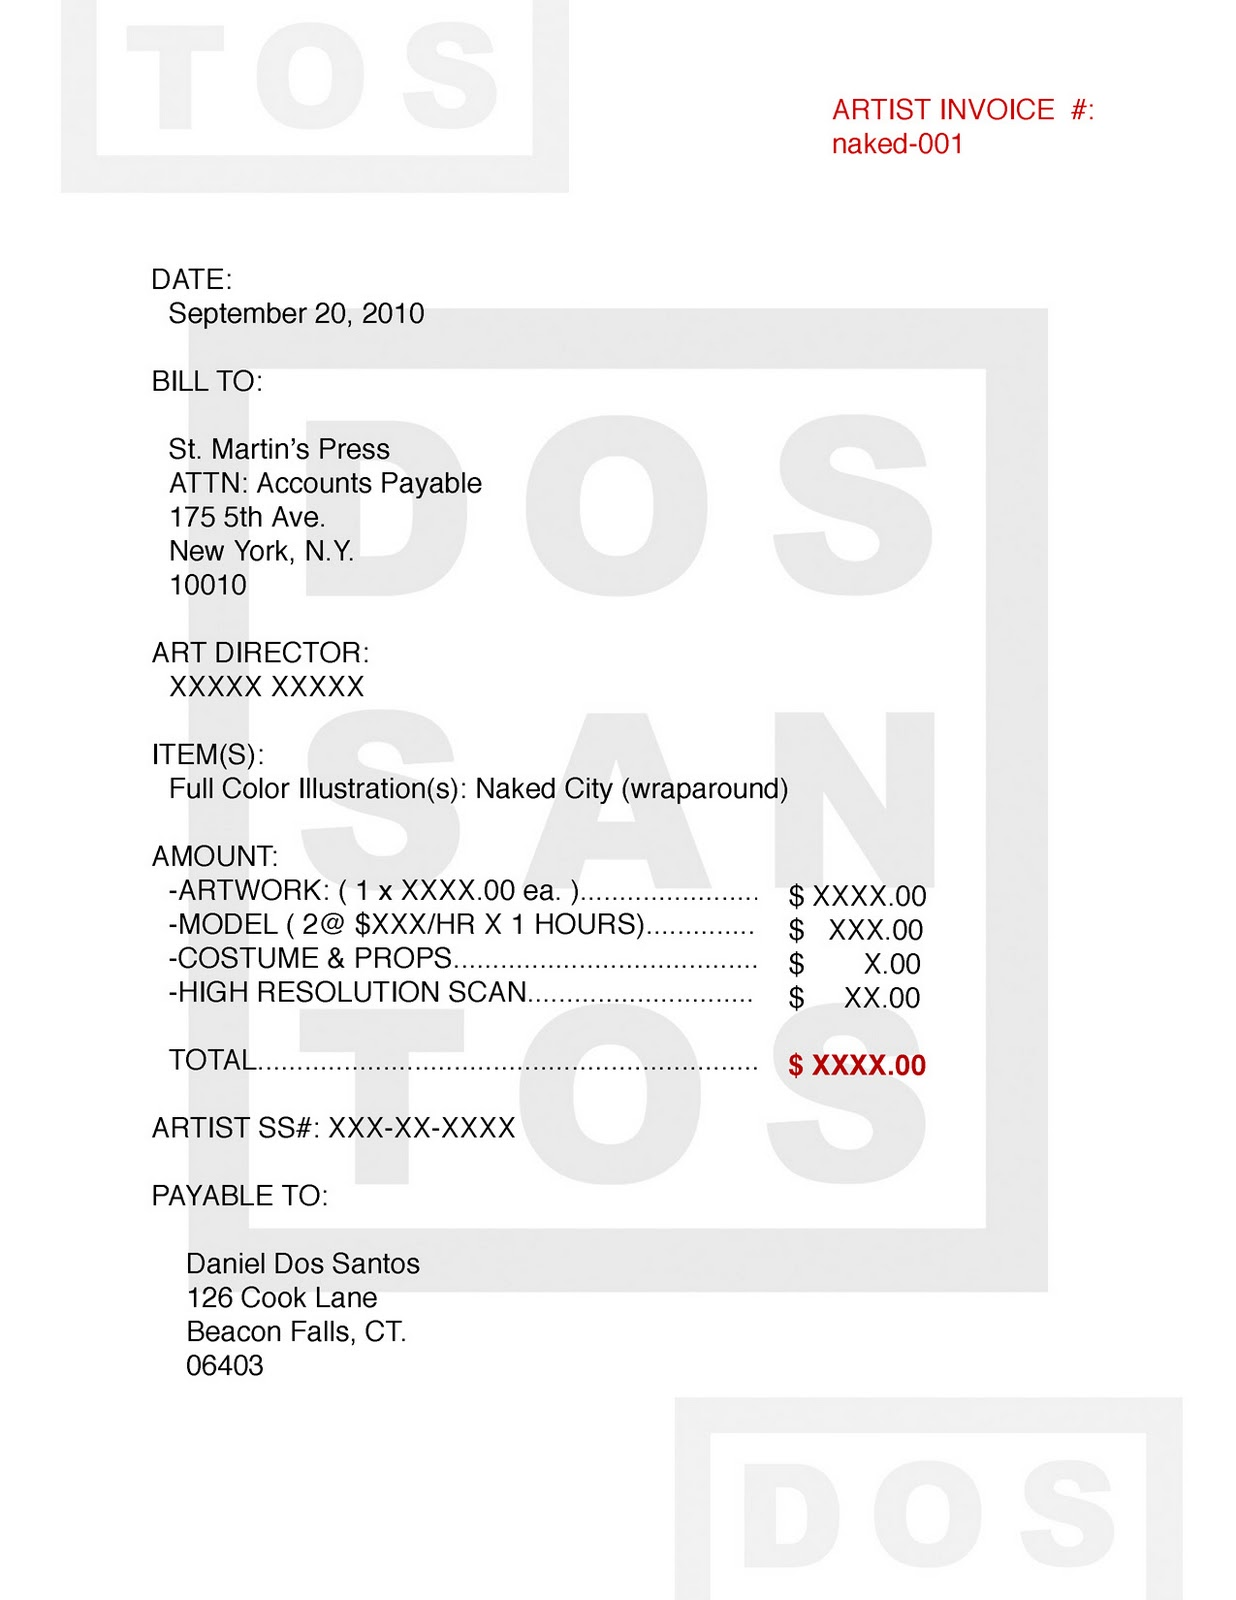 Picnictoimpeachus  Surprising Muddy Colors Invoices With Fascinating I Believe That This Format Contains All The Pertinent Information That A Good Invoice Should Have And Can Serve As A Decent Template For Your Own With Endearing Dod Lost Receipt Form Also Receipts For Business In Addition Template For Cash Receipt And Receipt Reimbursement Form As Well As Neat Receipt App Additionally Pages Receipt Template From Muddycolorsblogspotcom With Picnictoimpeachus  Fascinating Muddy Colors Invoices With Endearing I Believe That This Format Contains All The Pertinent Information That A Good Invoice Should Have And Can Serve As A Decent Template For Your Own And Surprising Dod Lost Receipt Form Also Receipts For Business In Addition Template For Cash Receipt From Muddycolorsblogspotcom